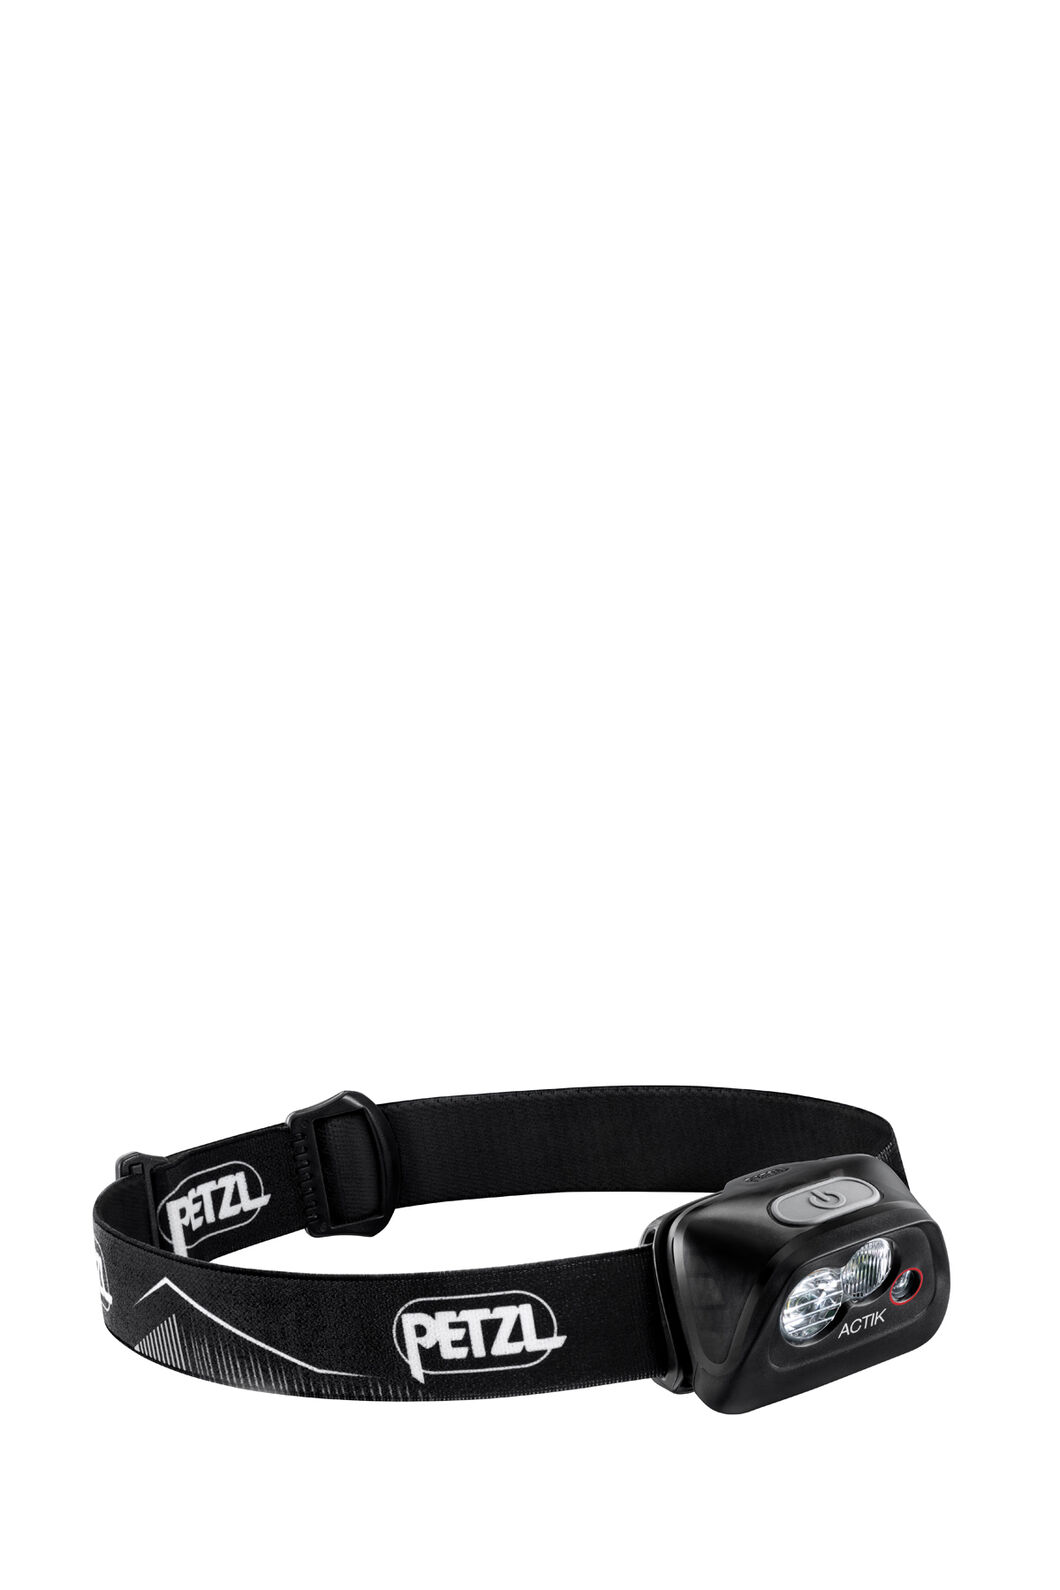 Petzl Actik Head Torch, Black, hi-res